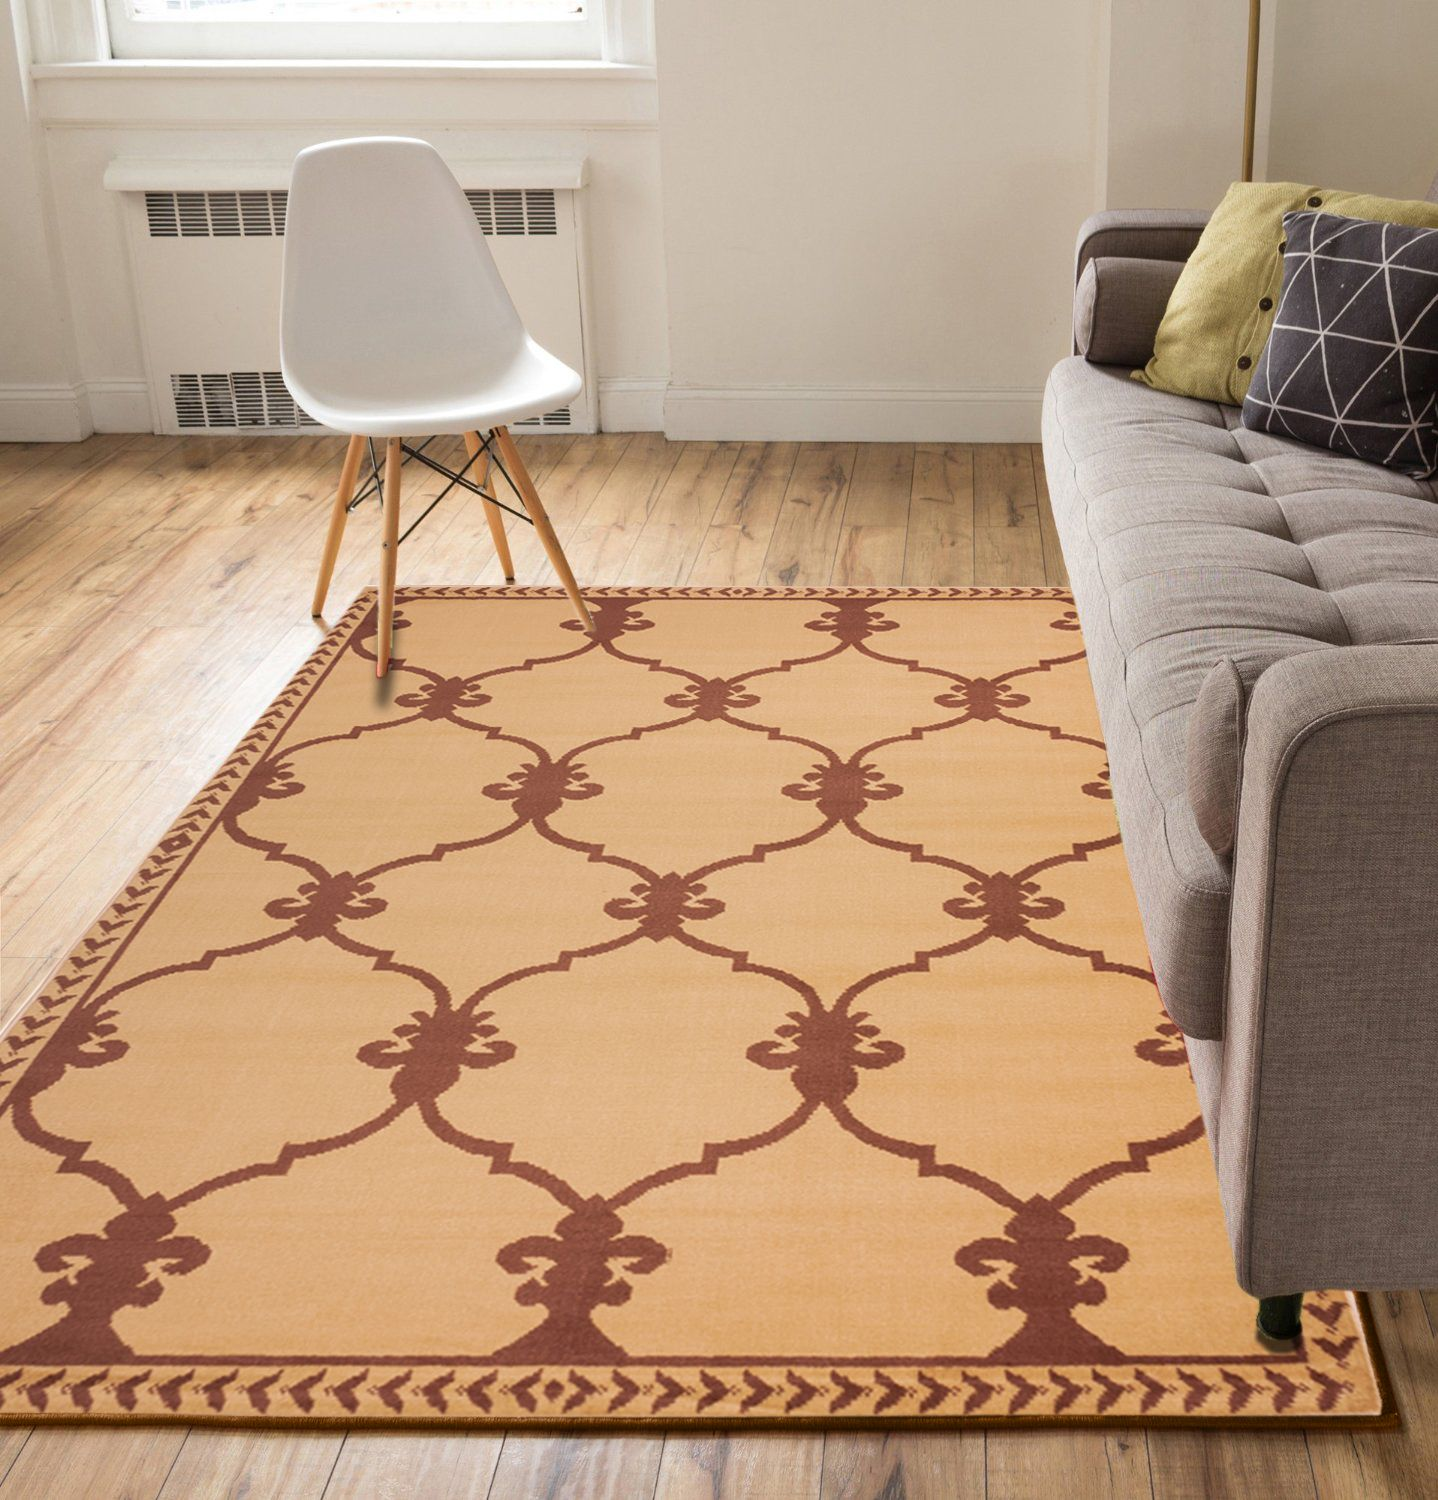 Well Woven Medallion Beige Brown 5' x 7' Area Rug Carpet